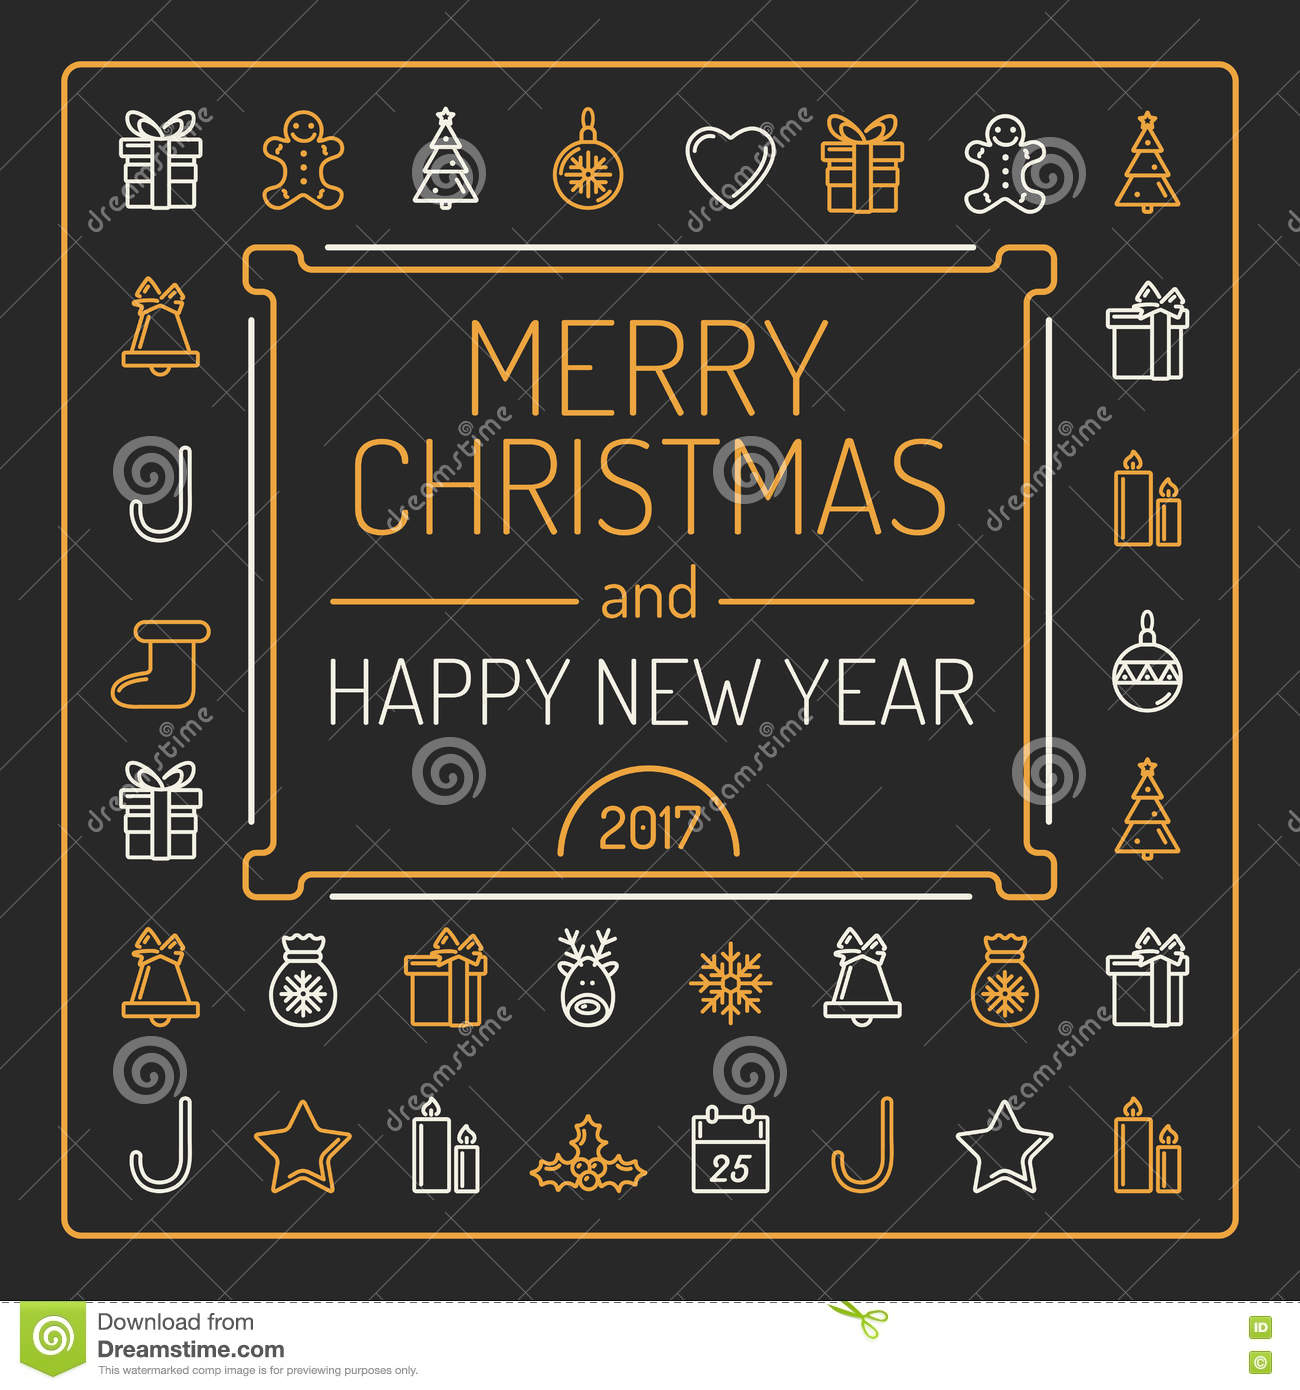 merry christmas and happy new year card golden and silver colour outlines on black background